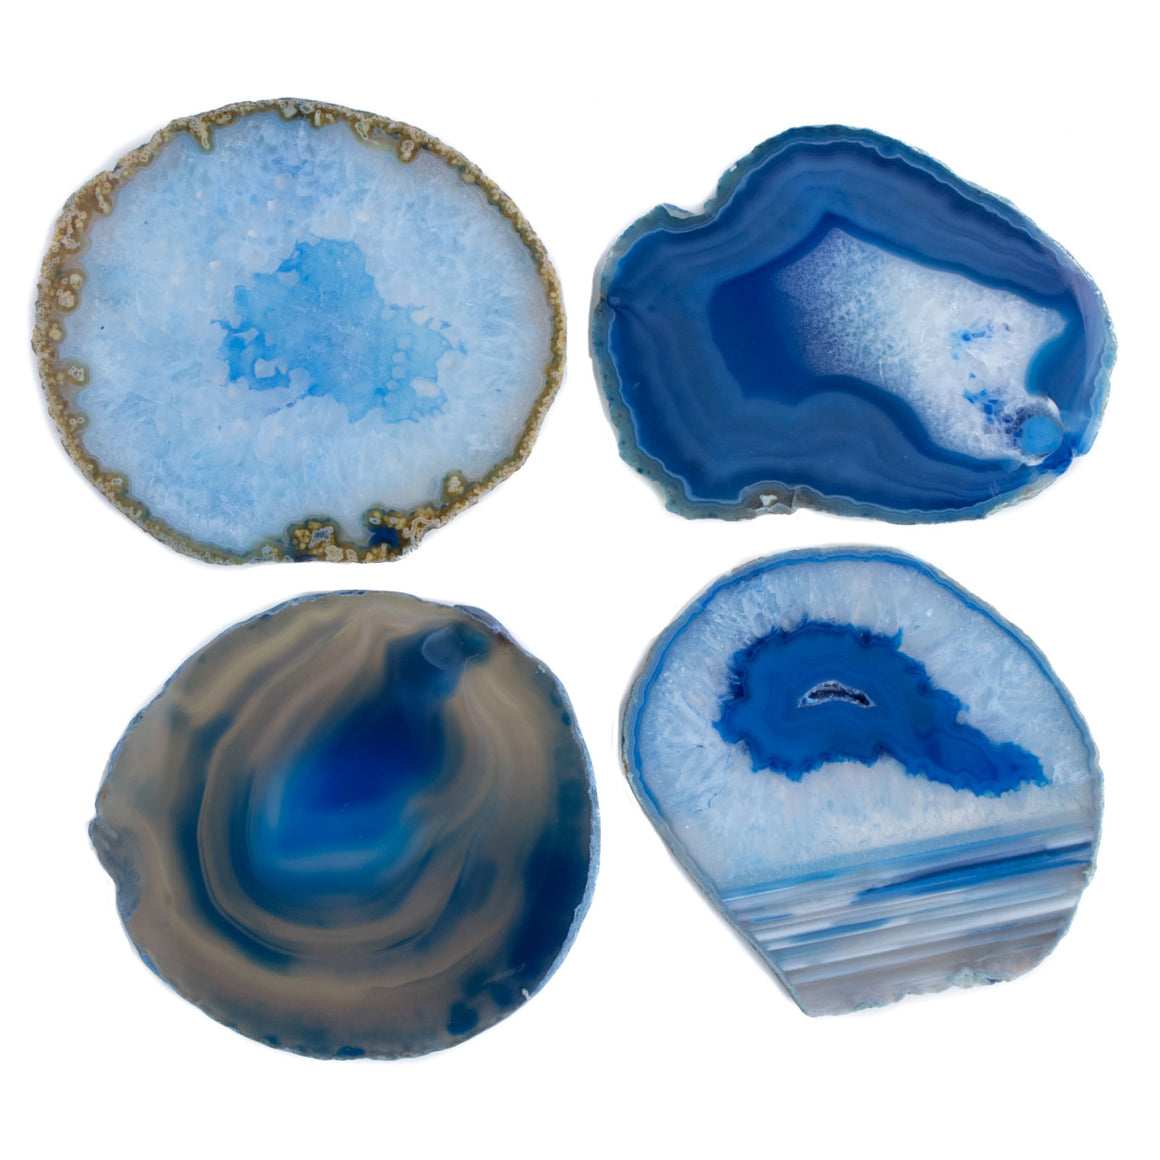 Blue Banded Agate Geode Coasters Set of 4 from Brazil